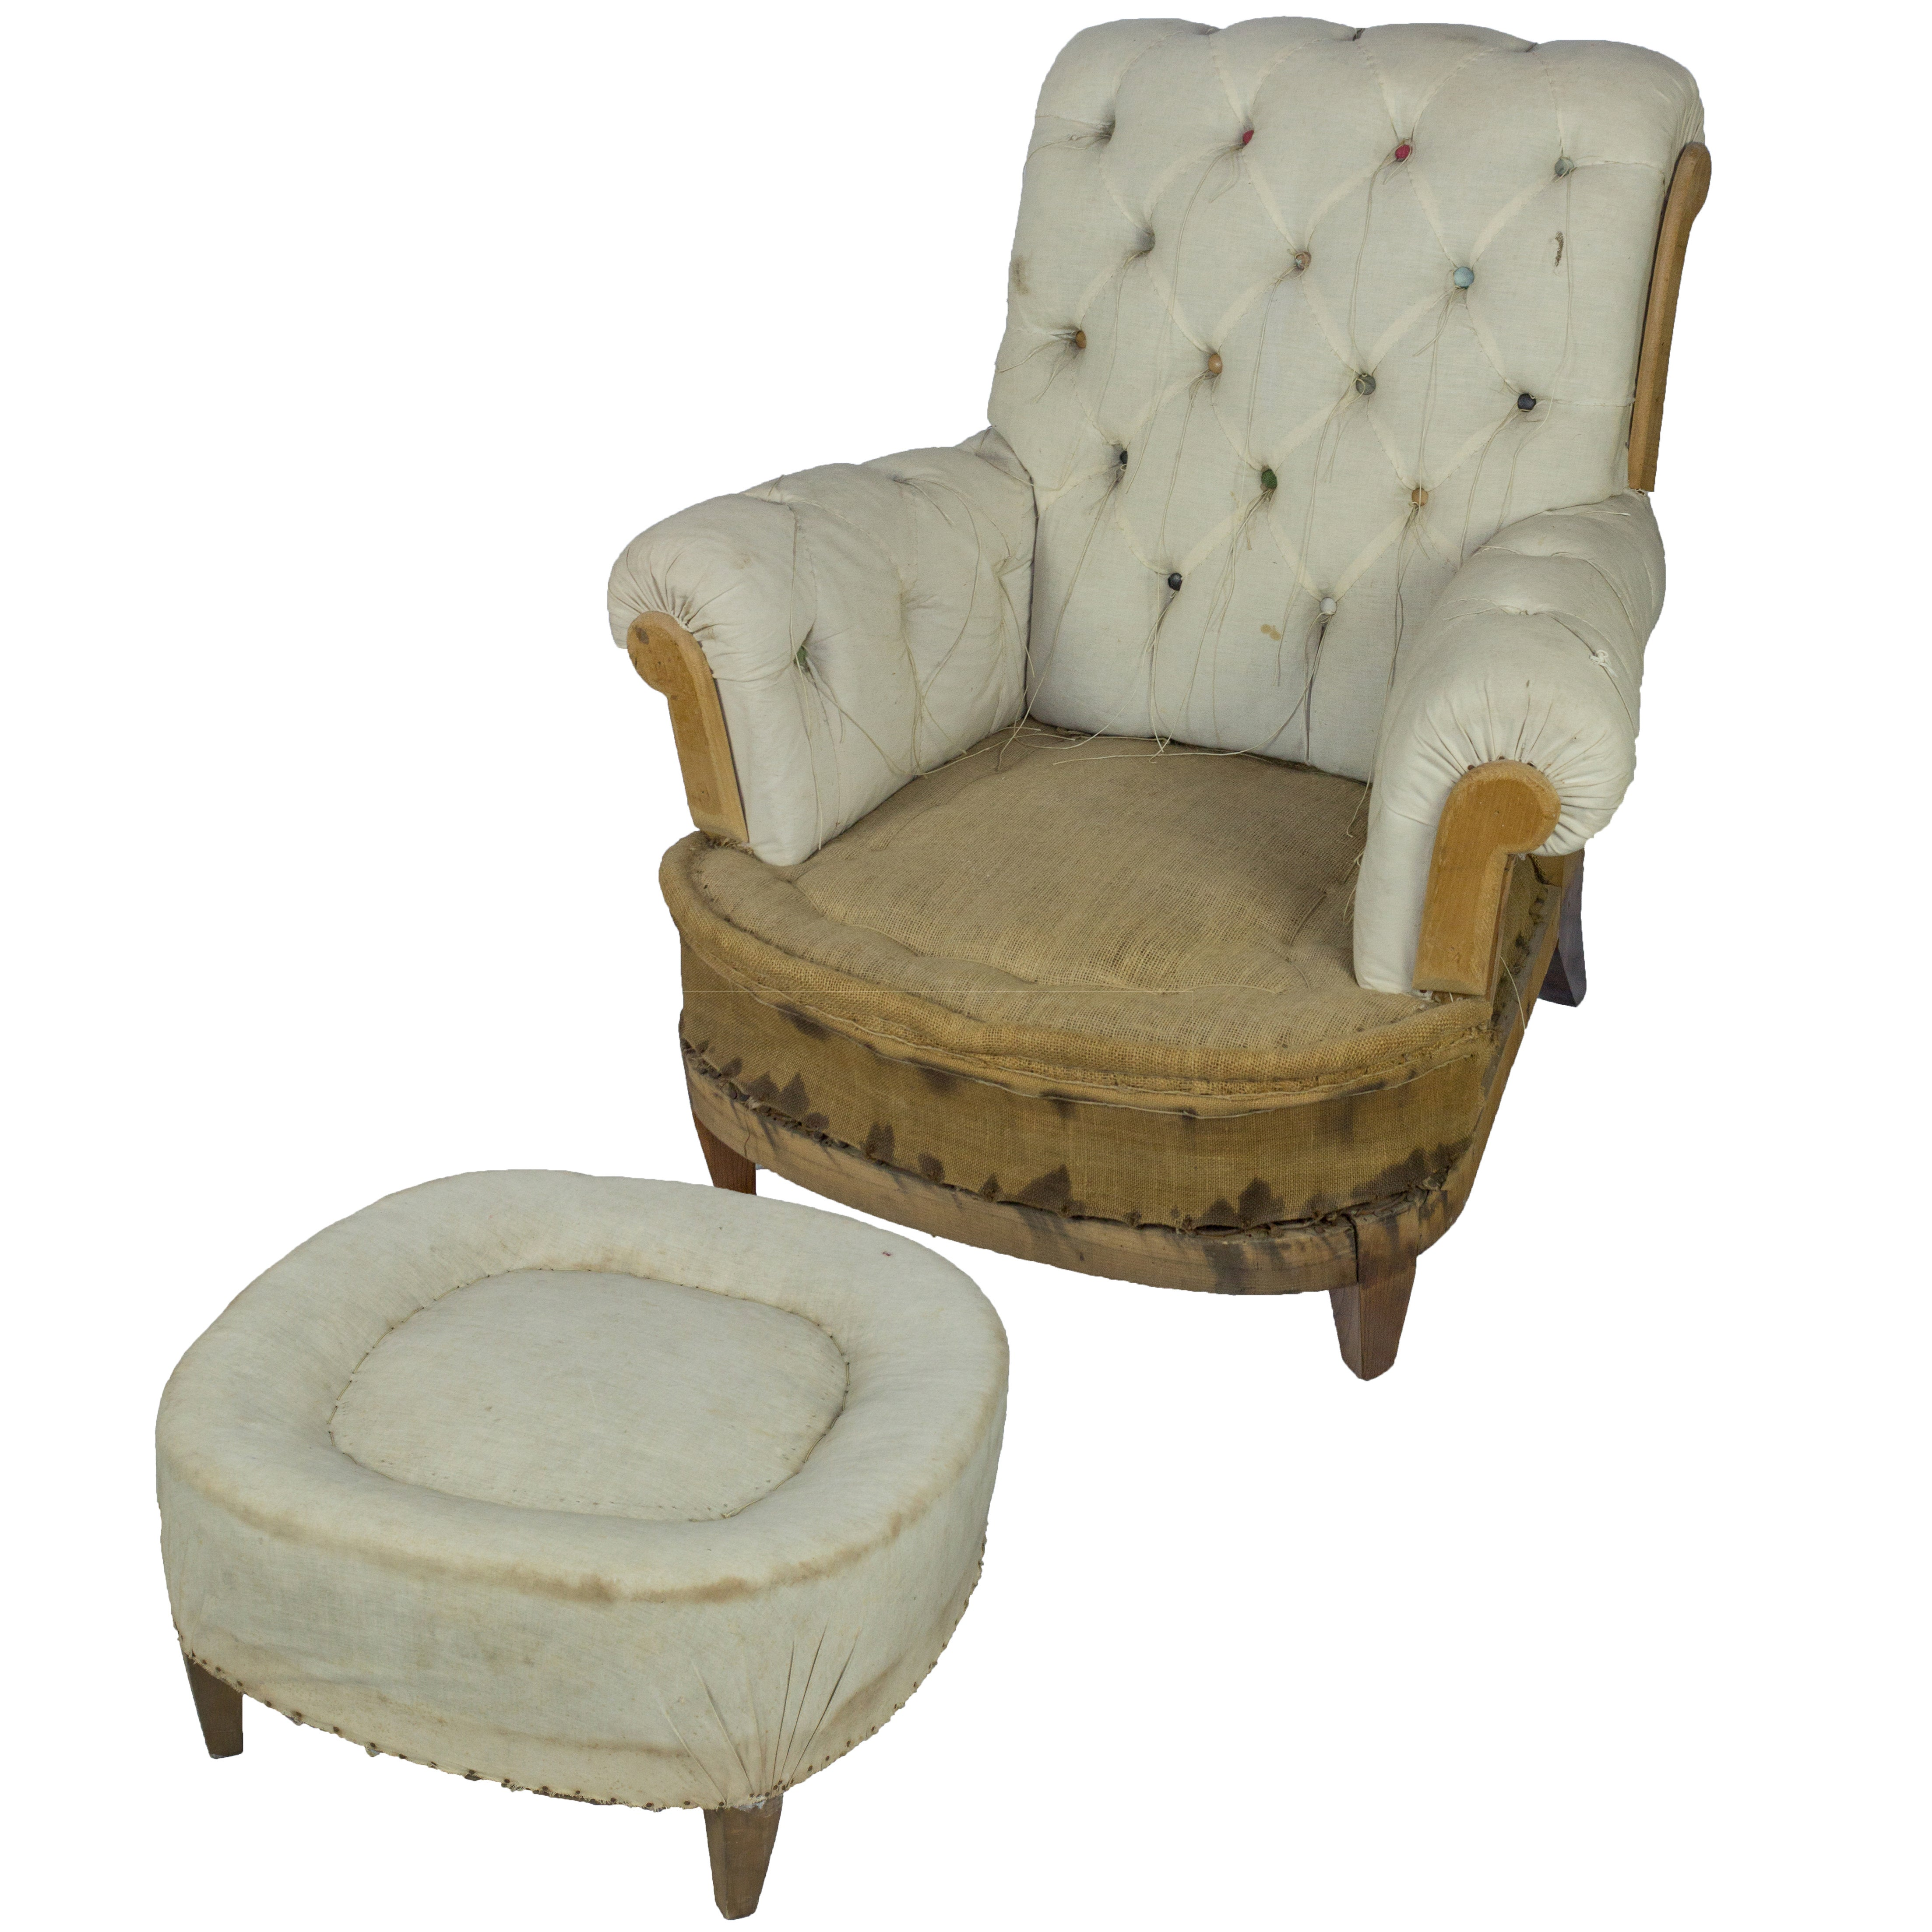 Large Tufted Armchair And Ottoman For Sale At 1stdibs